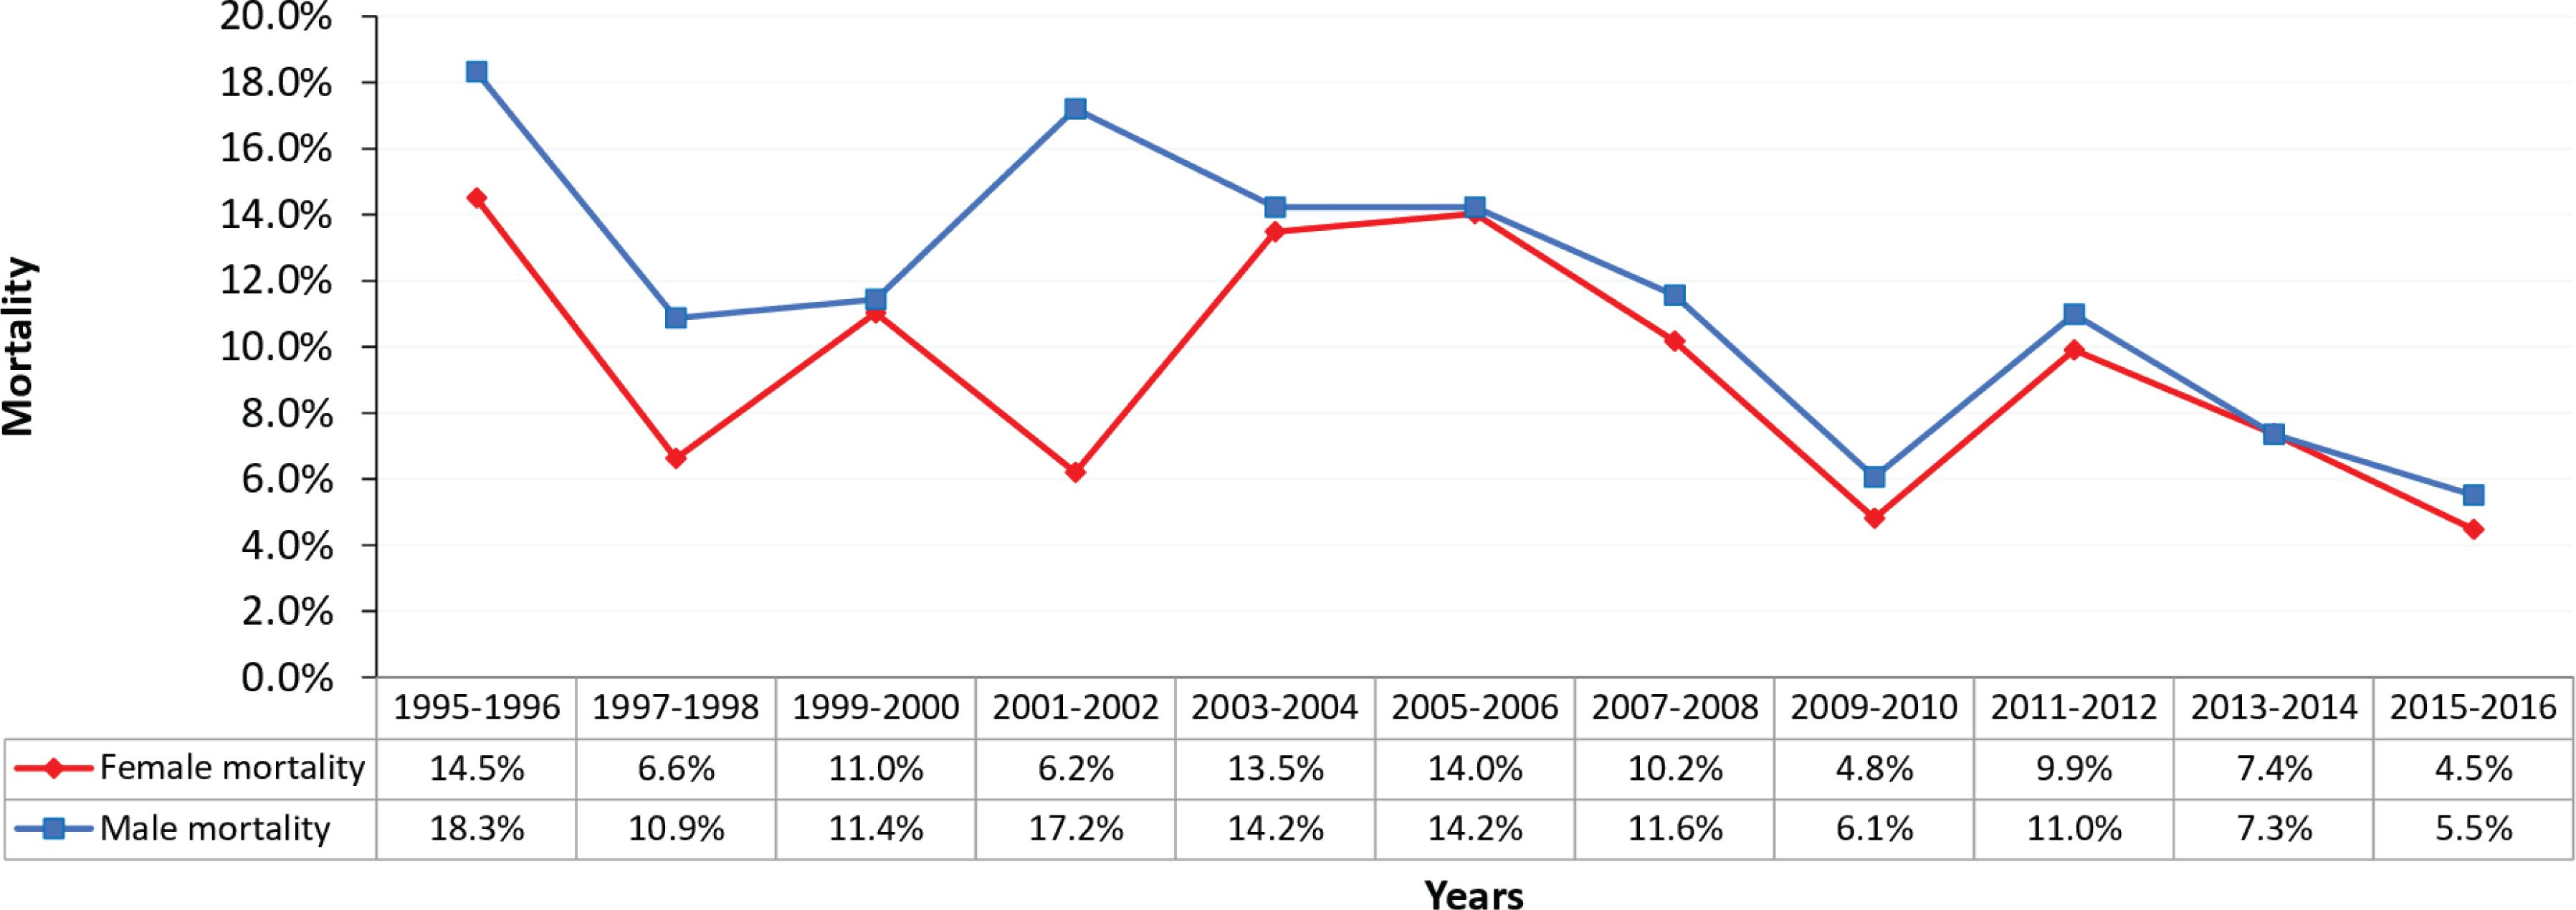 Institutional mortality according to the hospitalization period and stratified by sex (1995-2016).